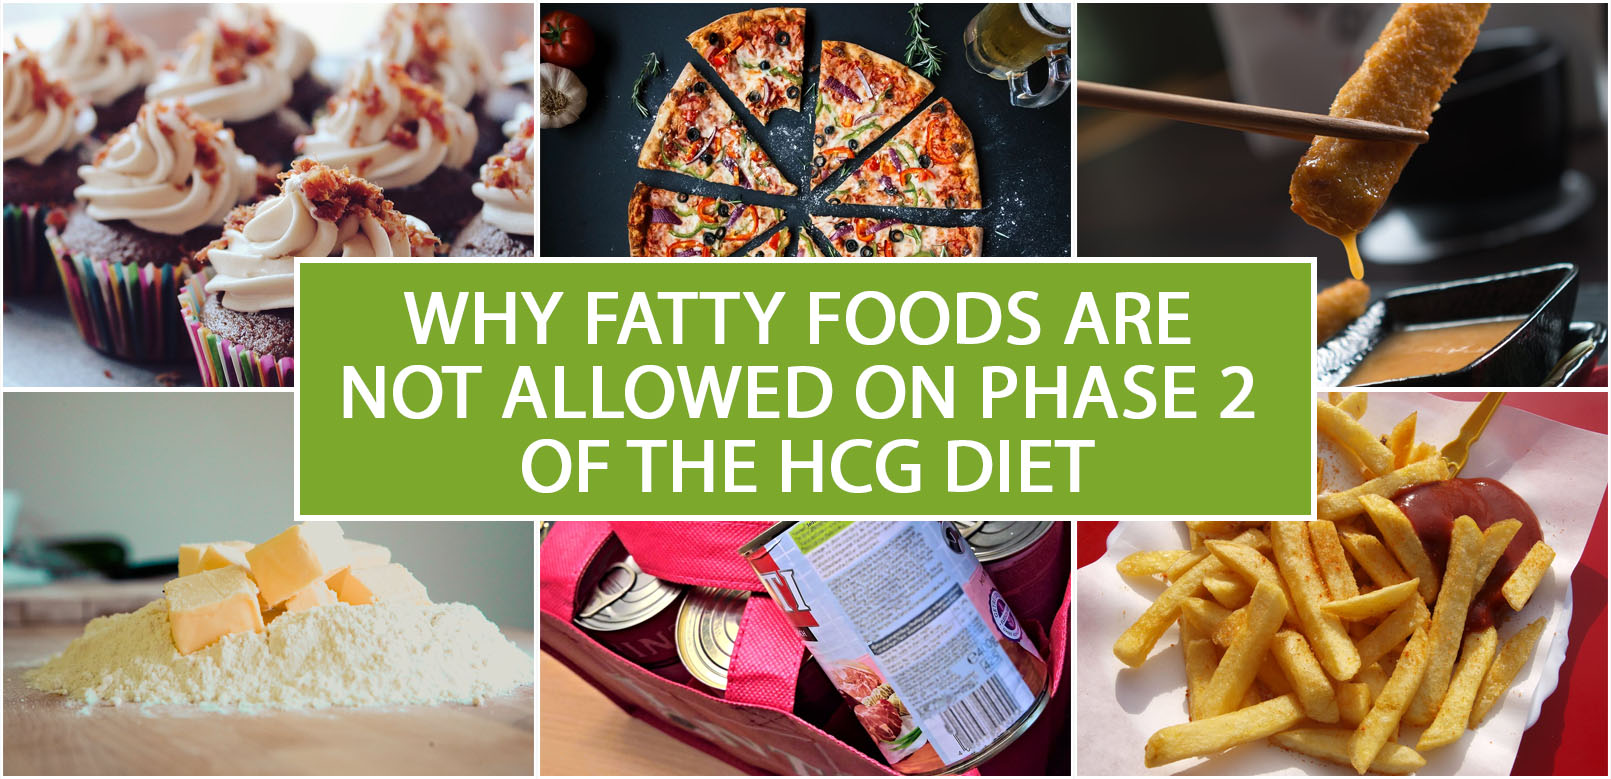 WHY FATTY FOODS ARE NOT ALLOWED ON PHASE 2 OF THE HCG DIET